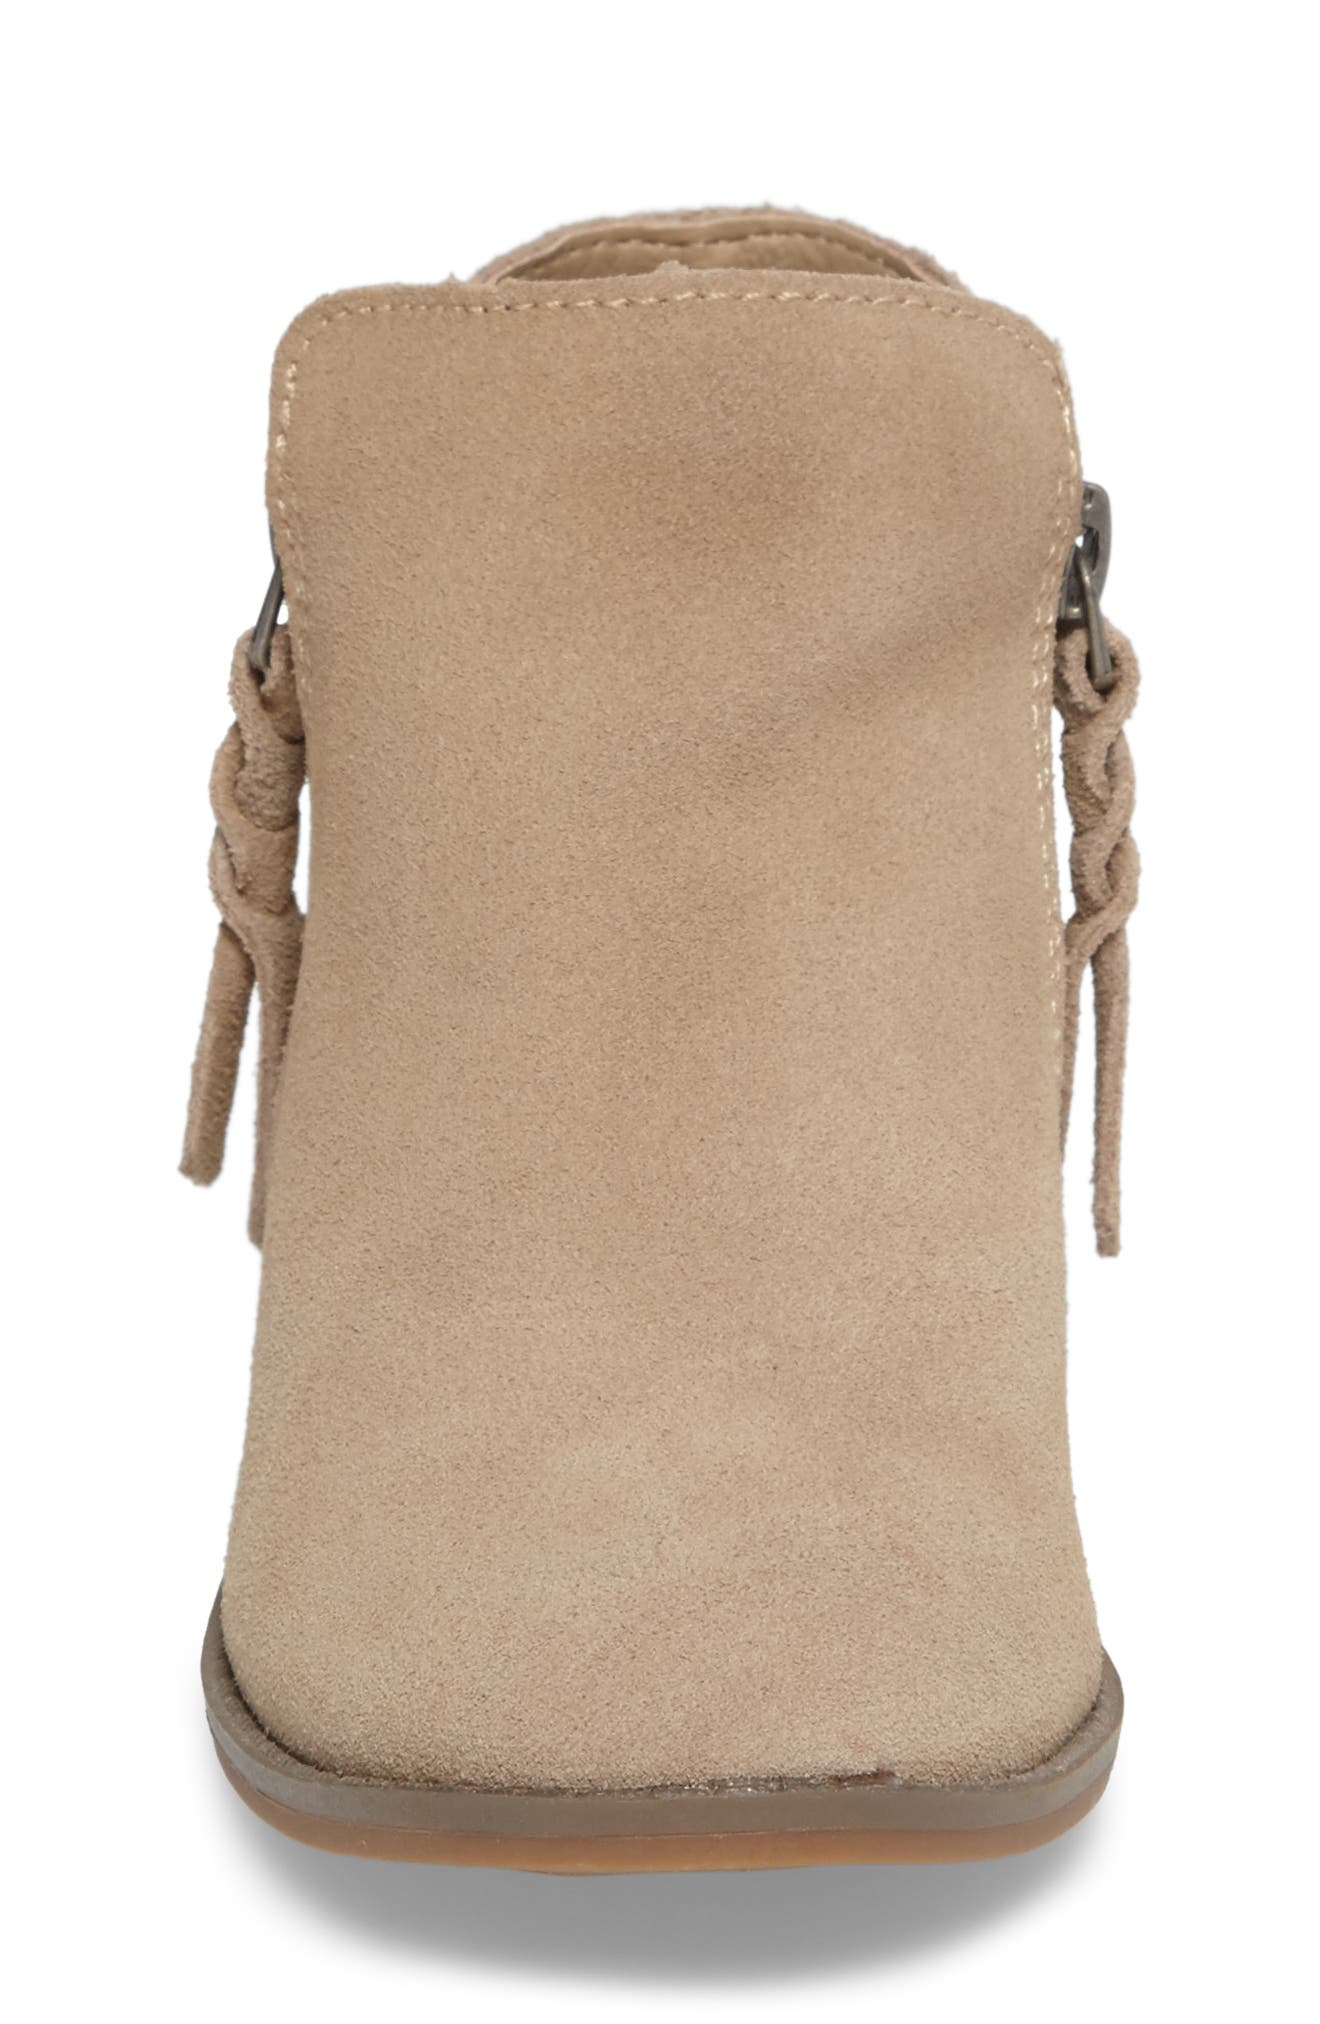 Sia Double-Zip Bootie,                             Alternate thumbnail 4, color,                             Sand Suede